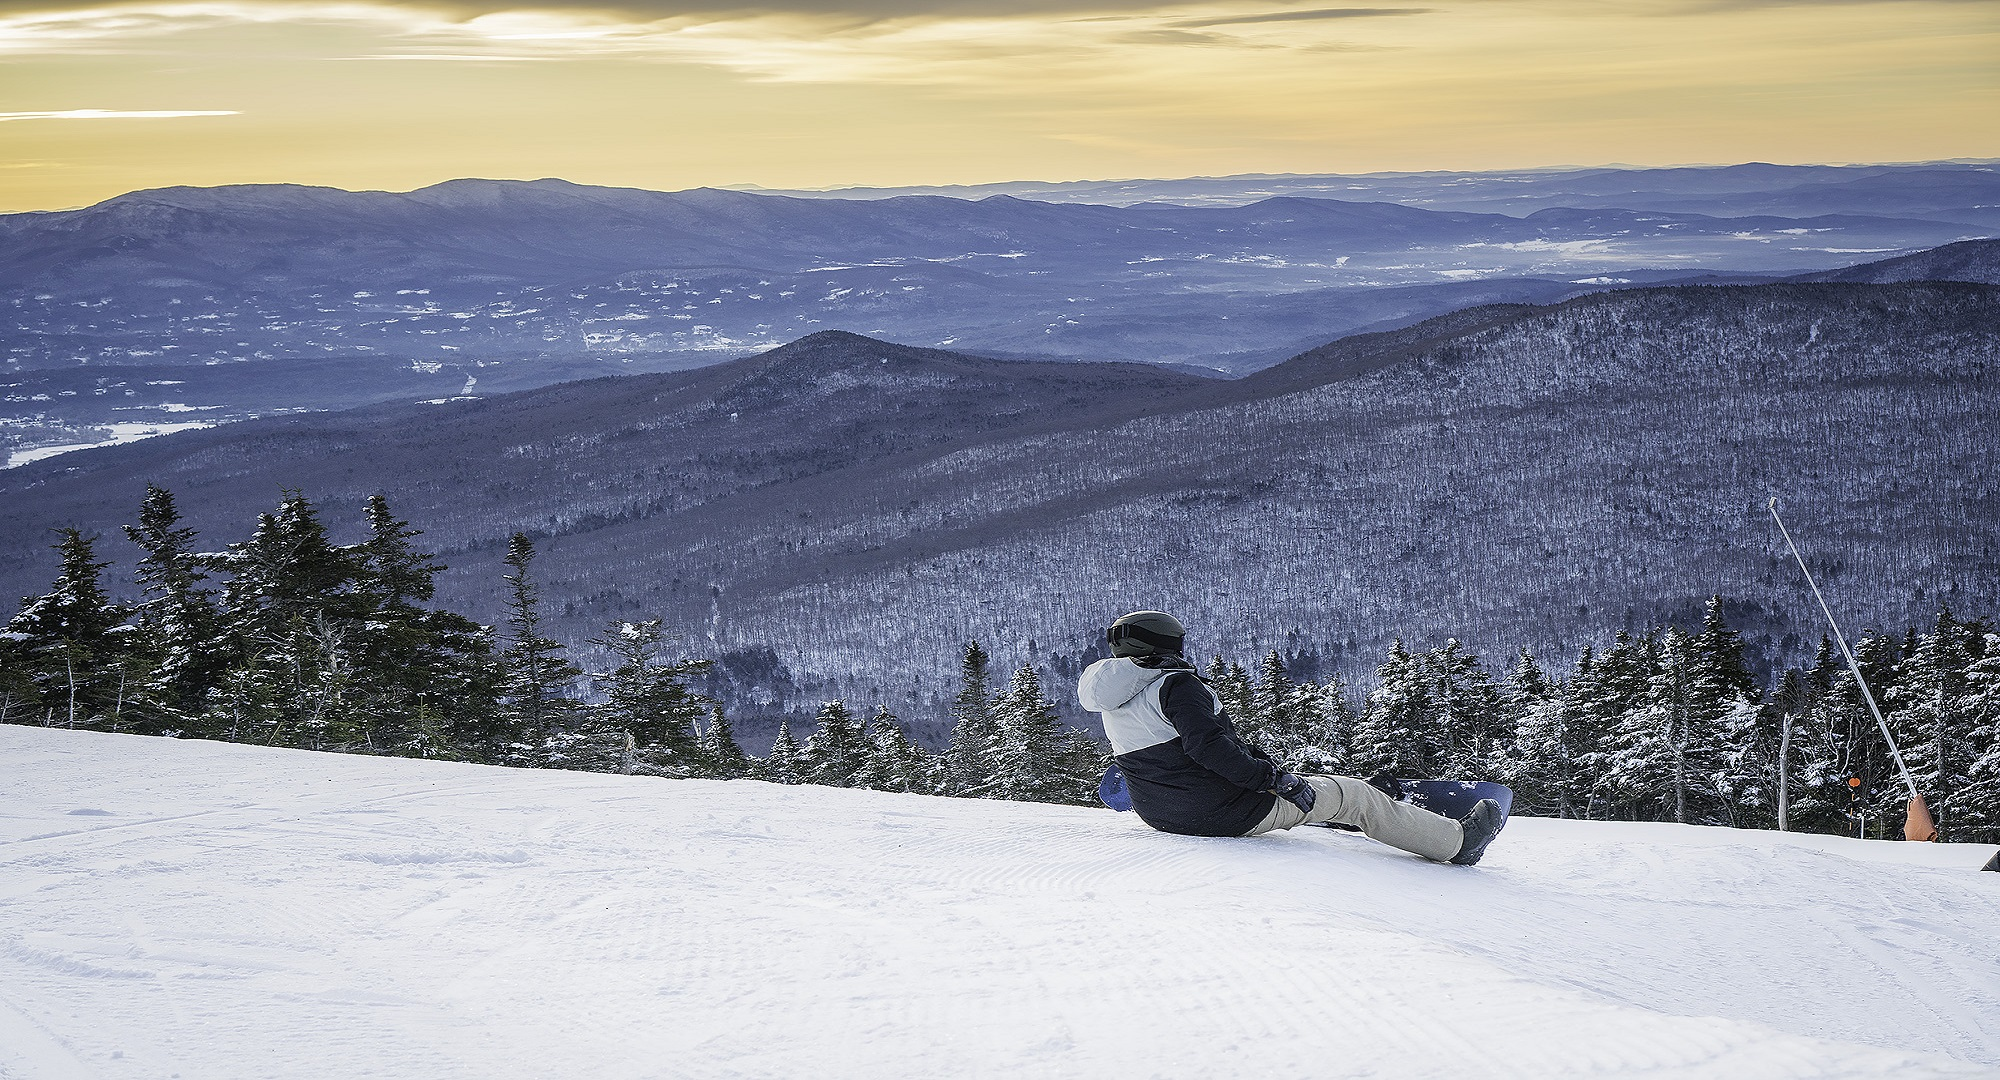 Lodging Winter Stowe VT 2021 & 2022